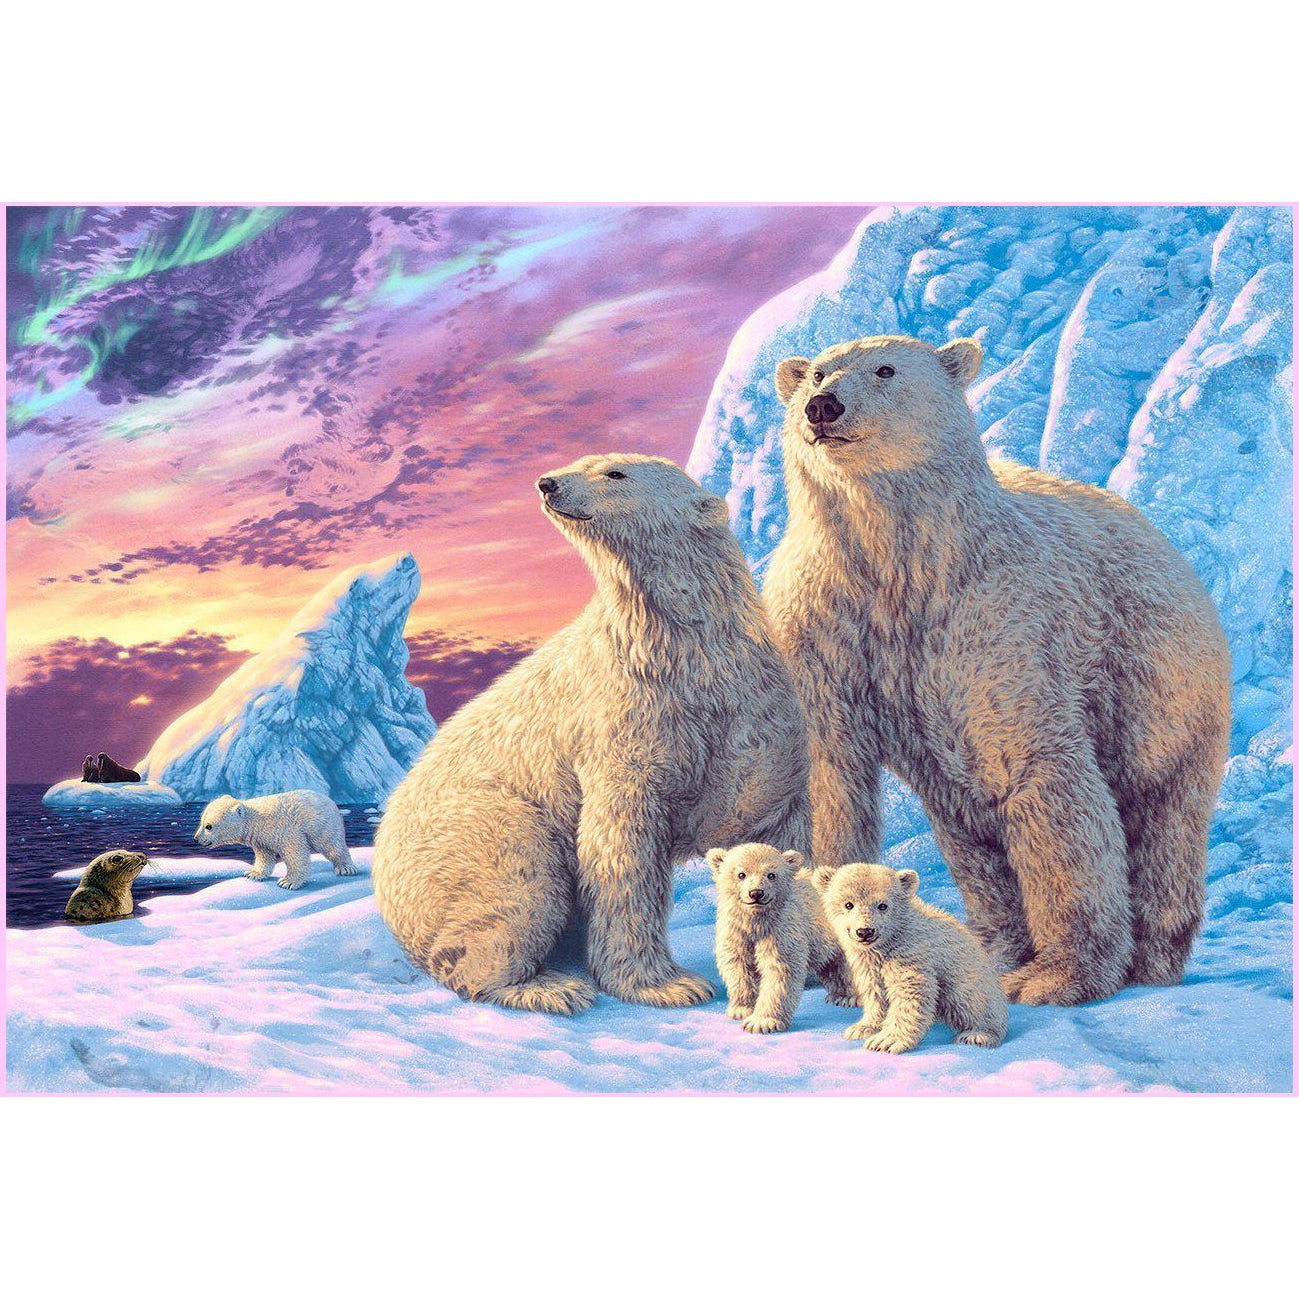 Polar Bears-Diamond Painting Kit USPS-30x40cm (12x16 in)-Square-Heartful Diamonds